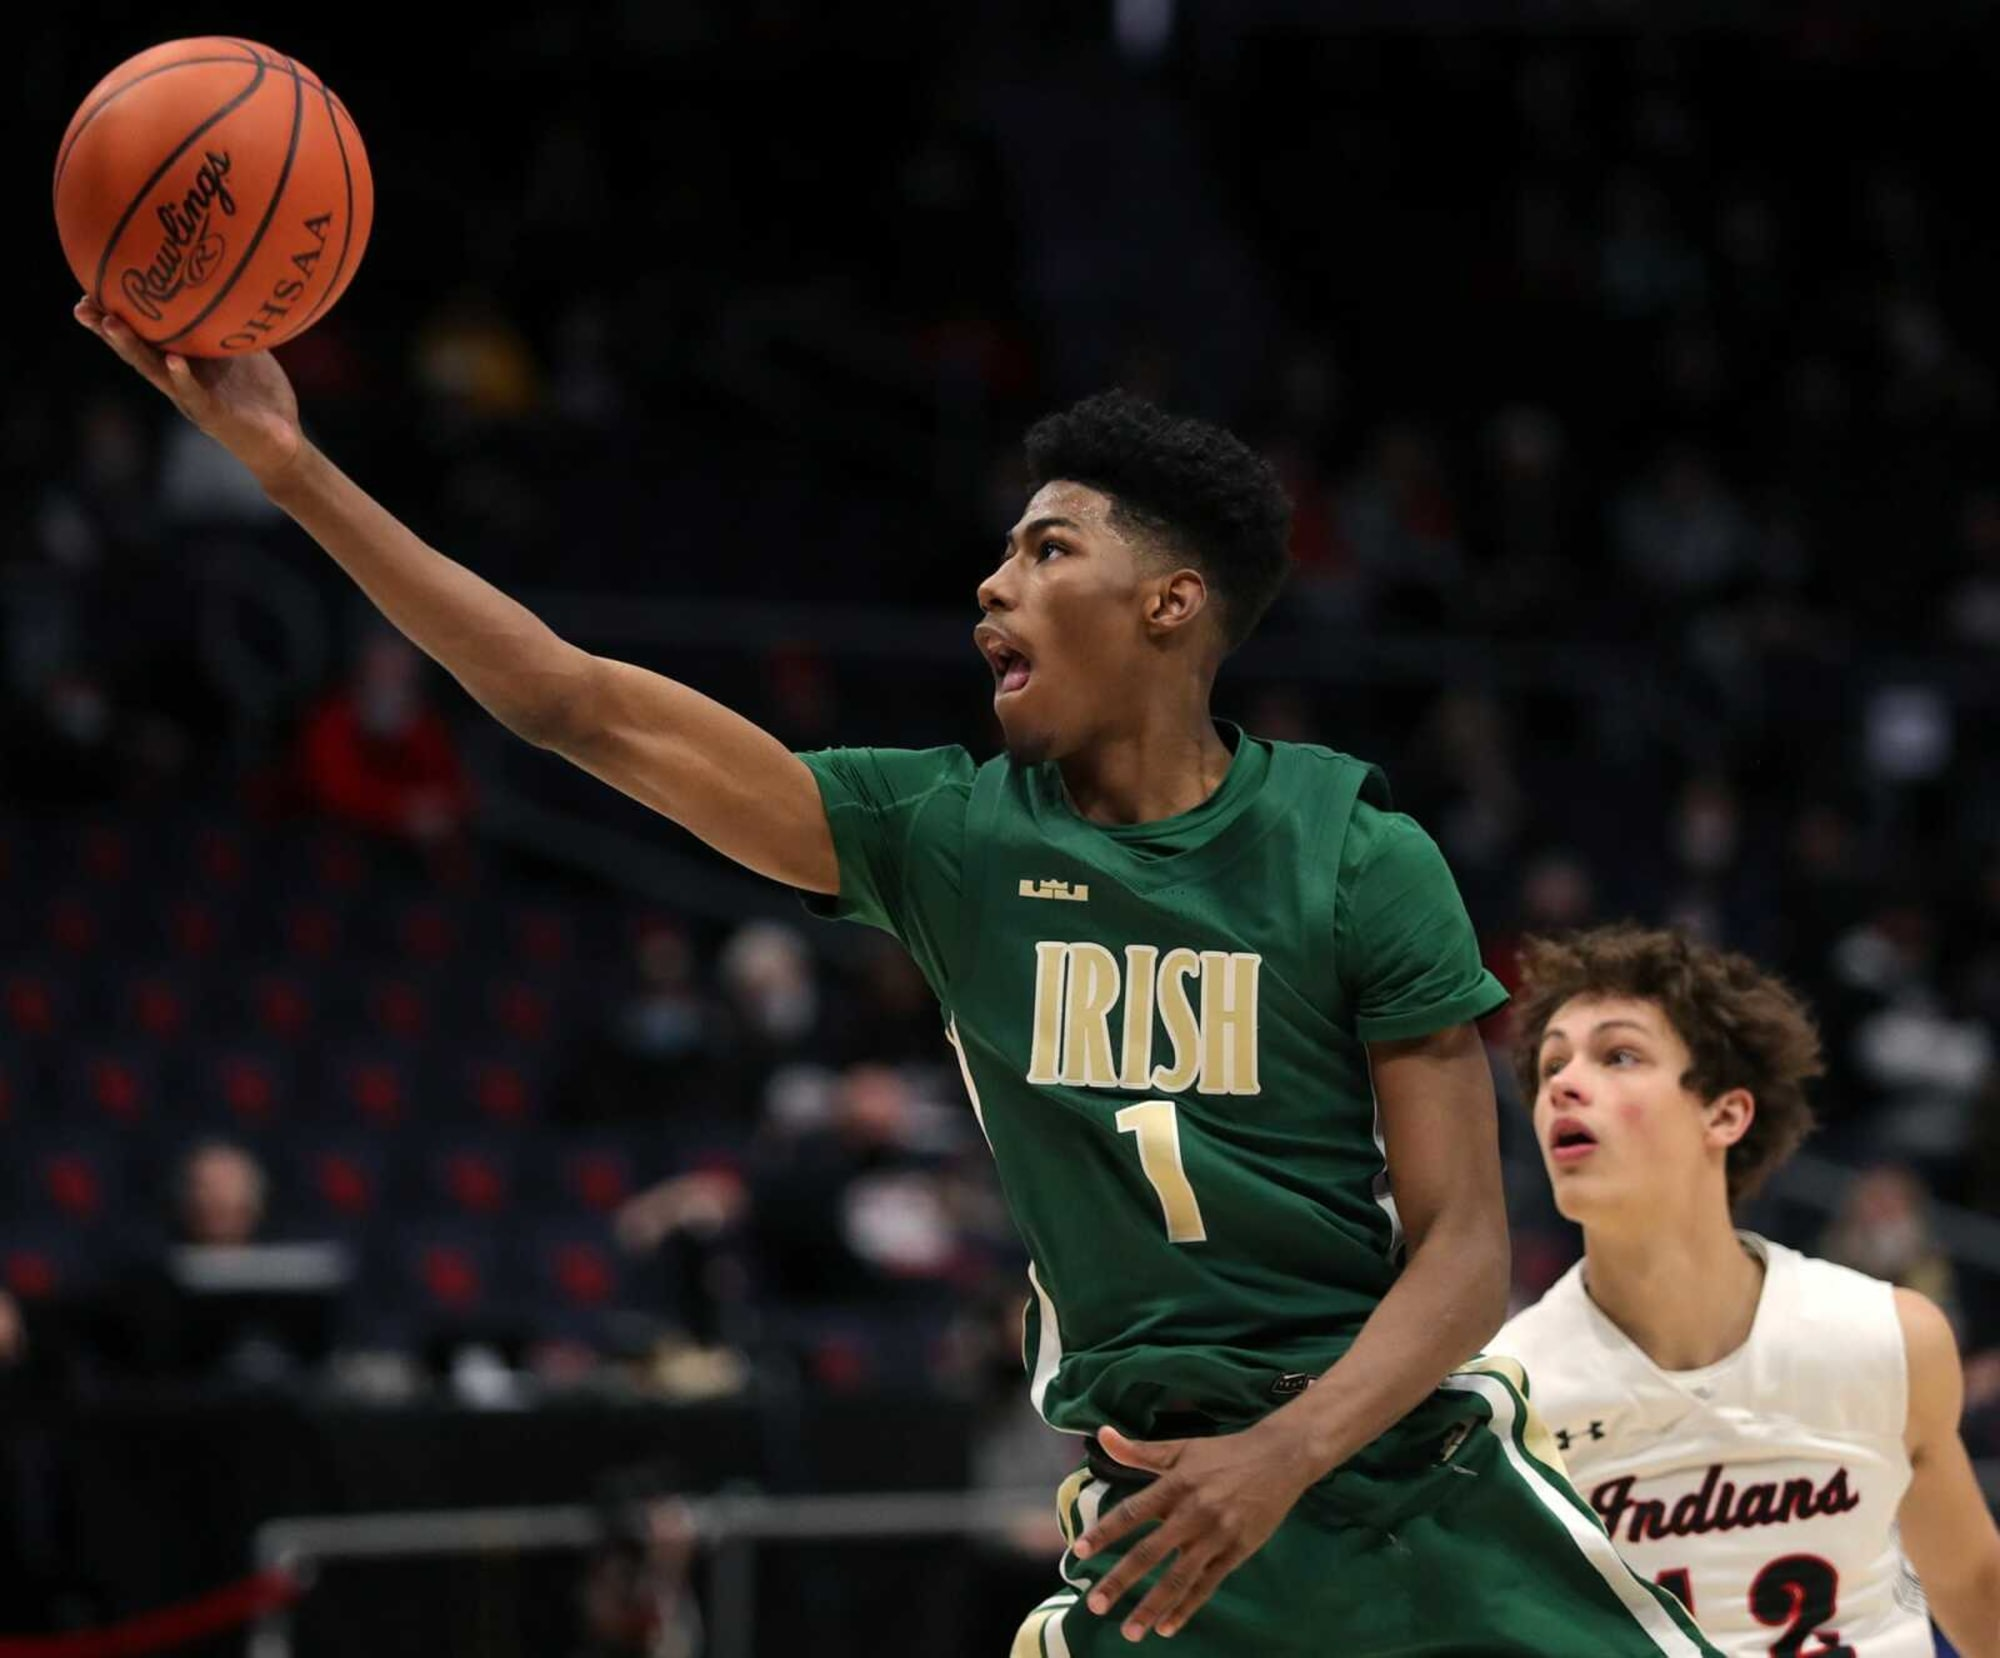 Illinois Basketball: Projected Illini lineup with the addition of Sencire Harris